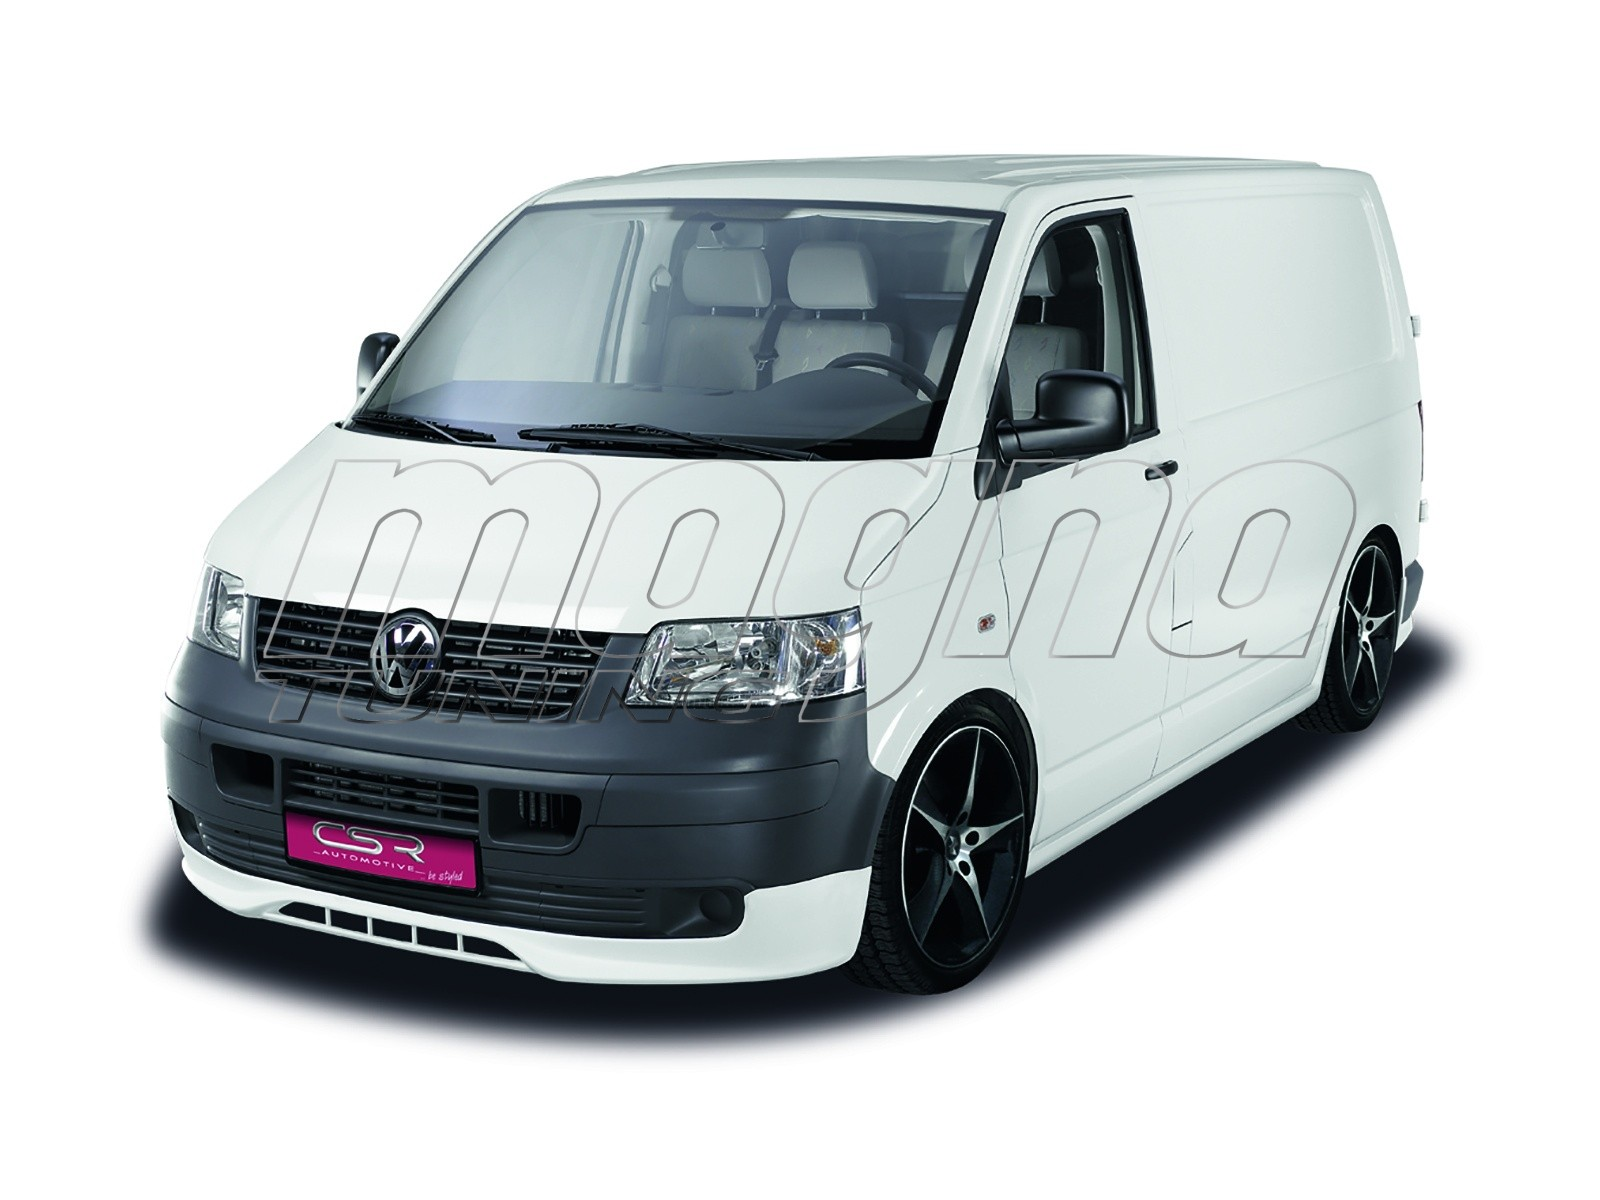 vw transporter t5 newline body kit. Black Bedroom Furniture Sets. Home Design Ideas